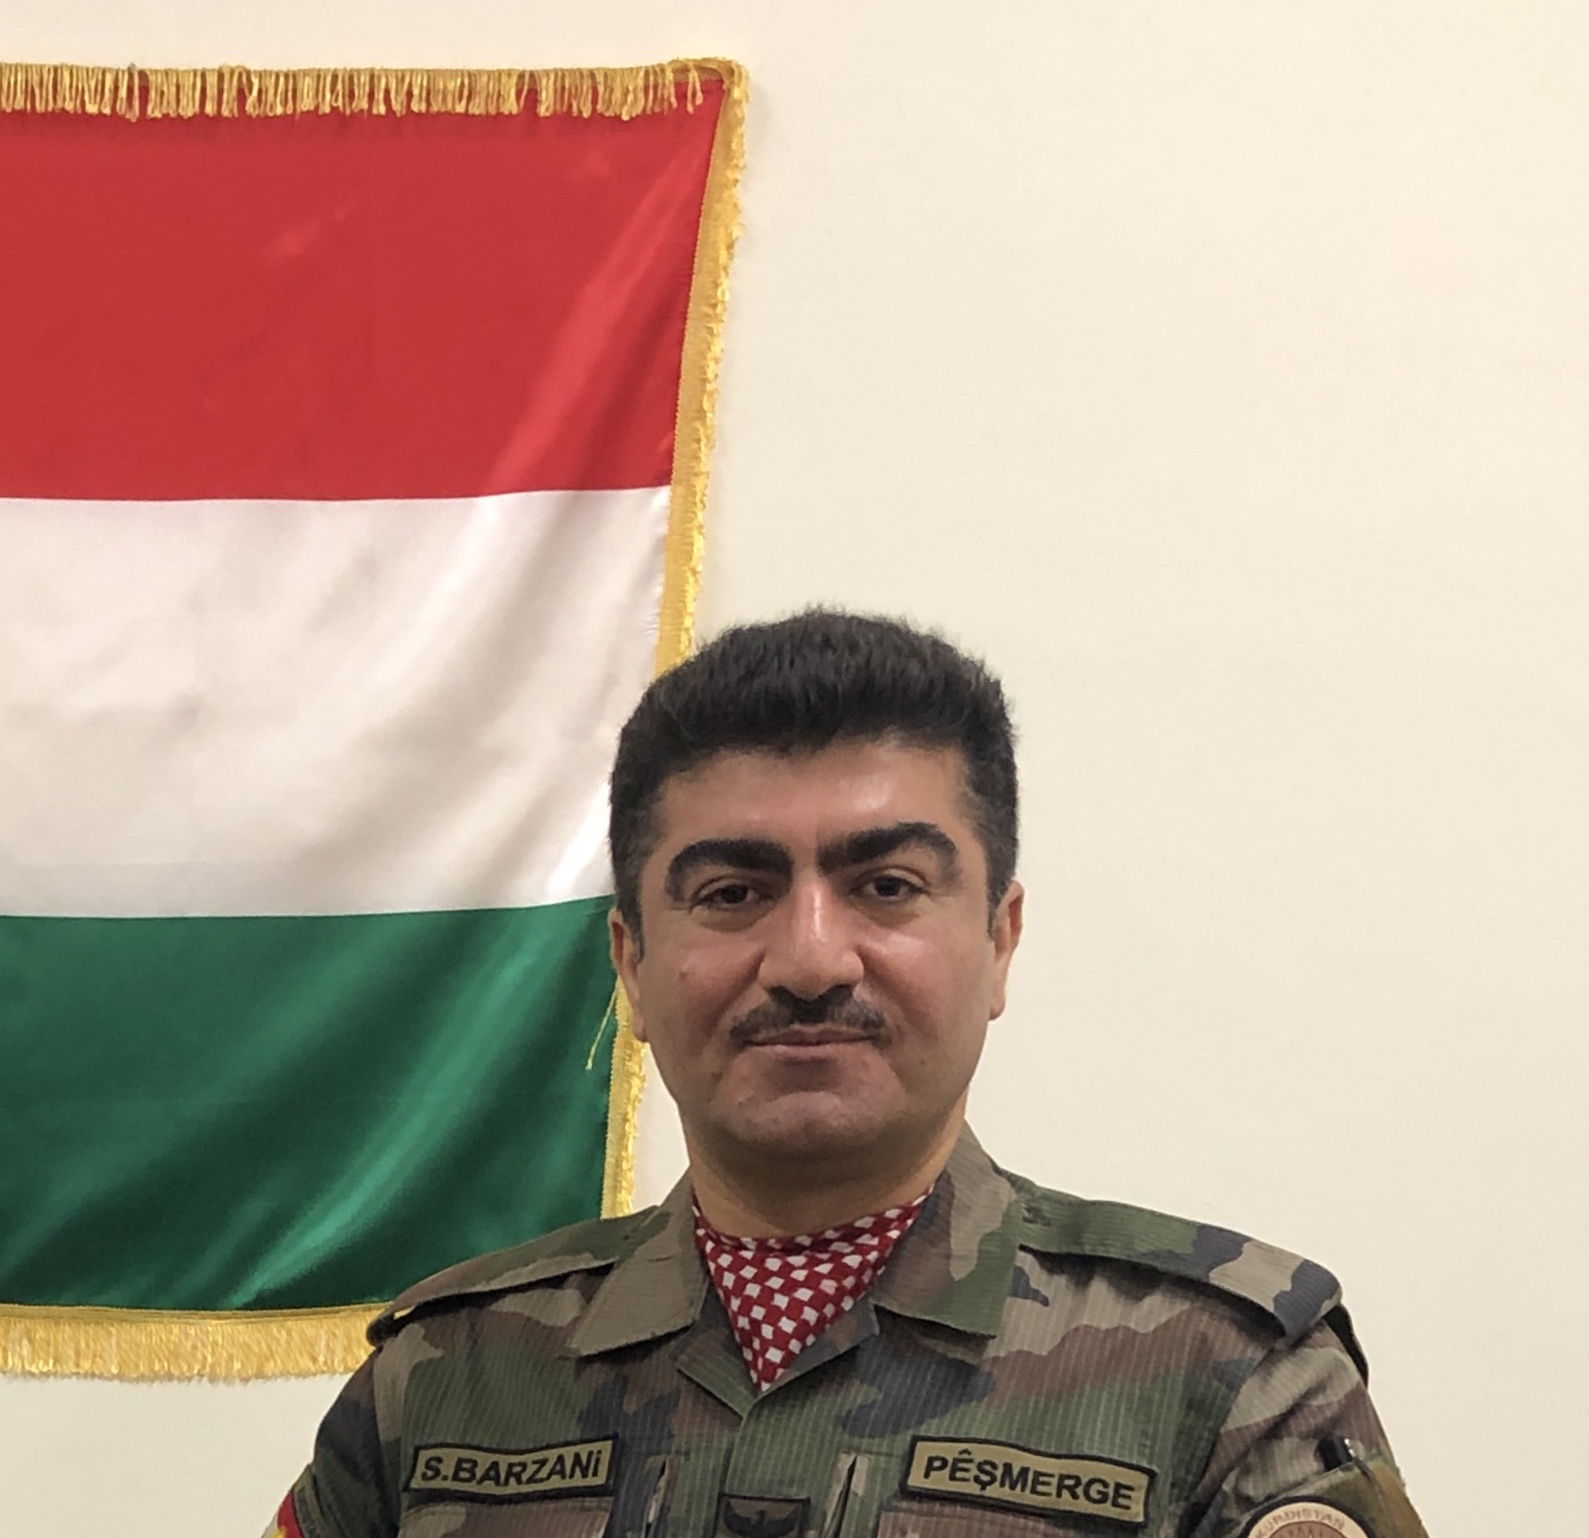 image2 - Major General Sirwan Barzani